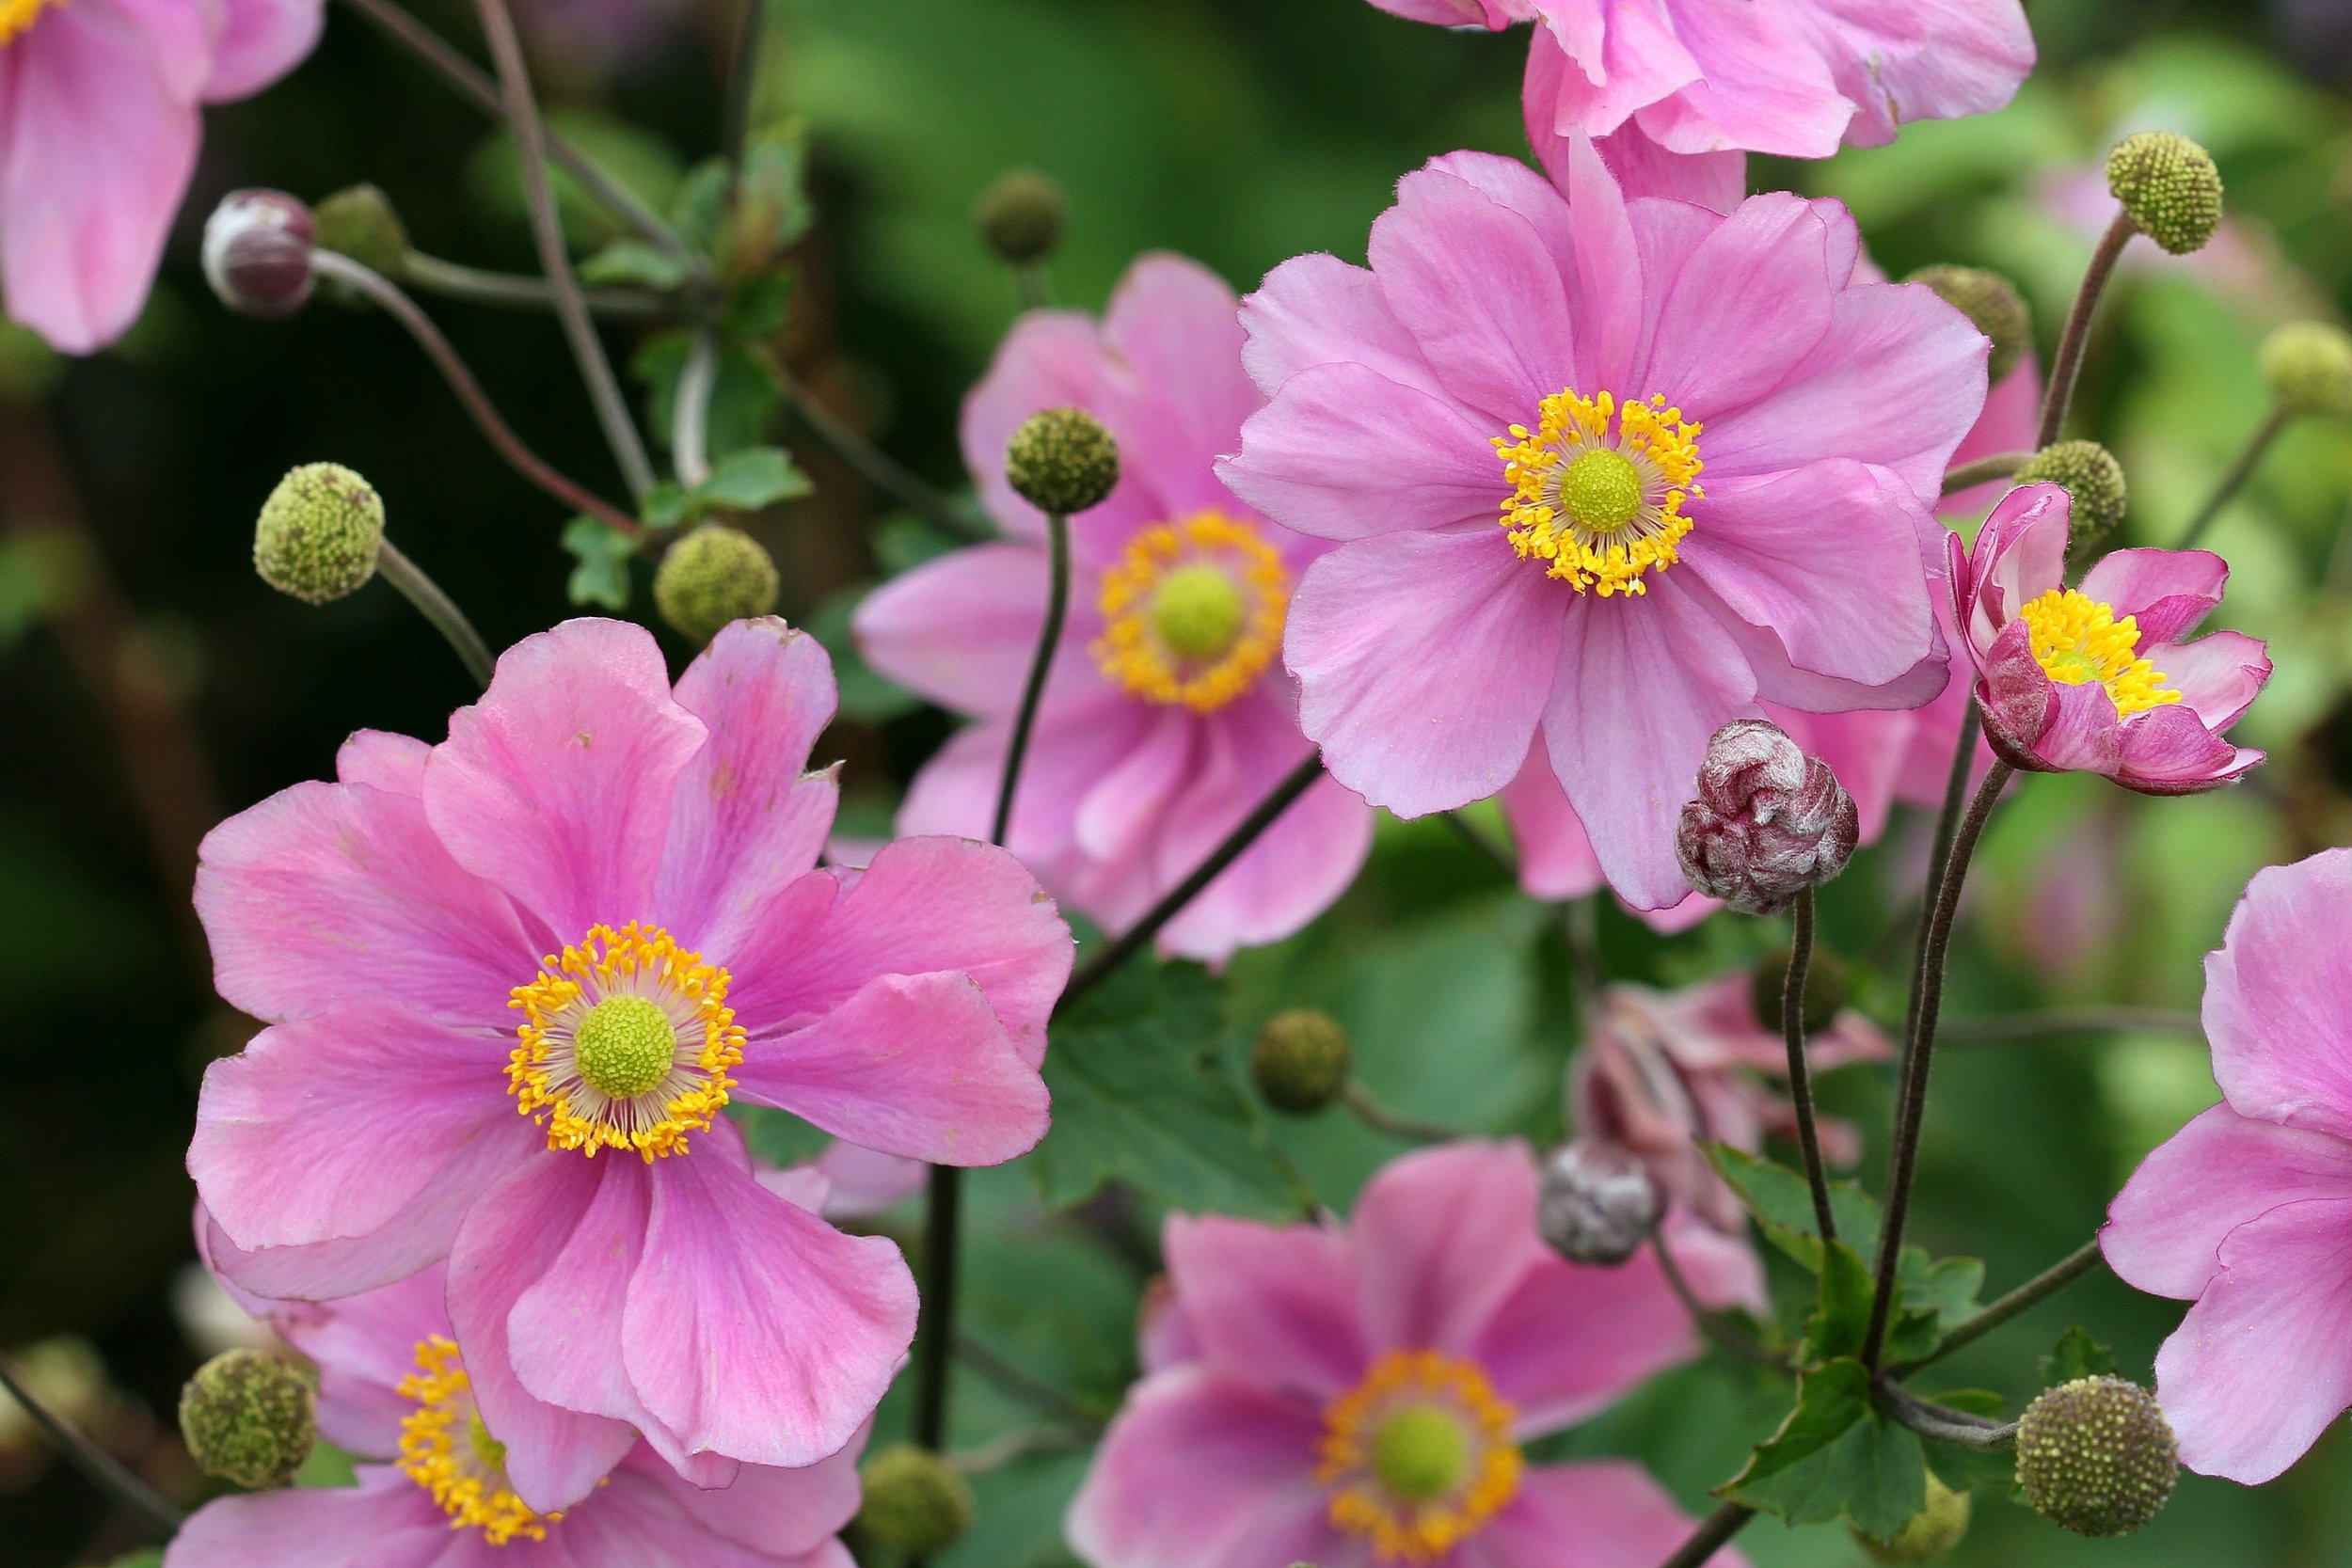 10 Perennials From Our Plant Nursery for a Sussex County, NJ, Backyard